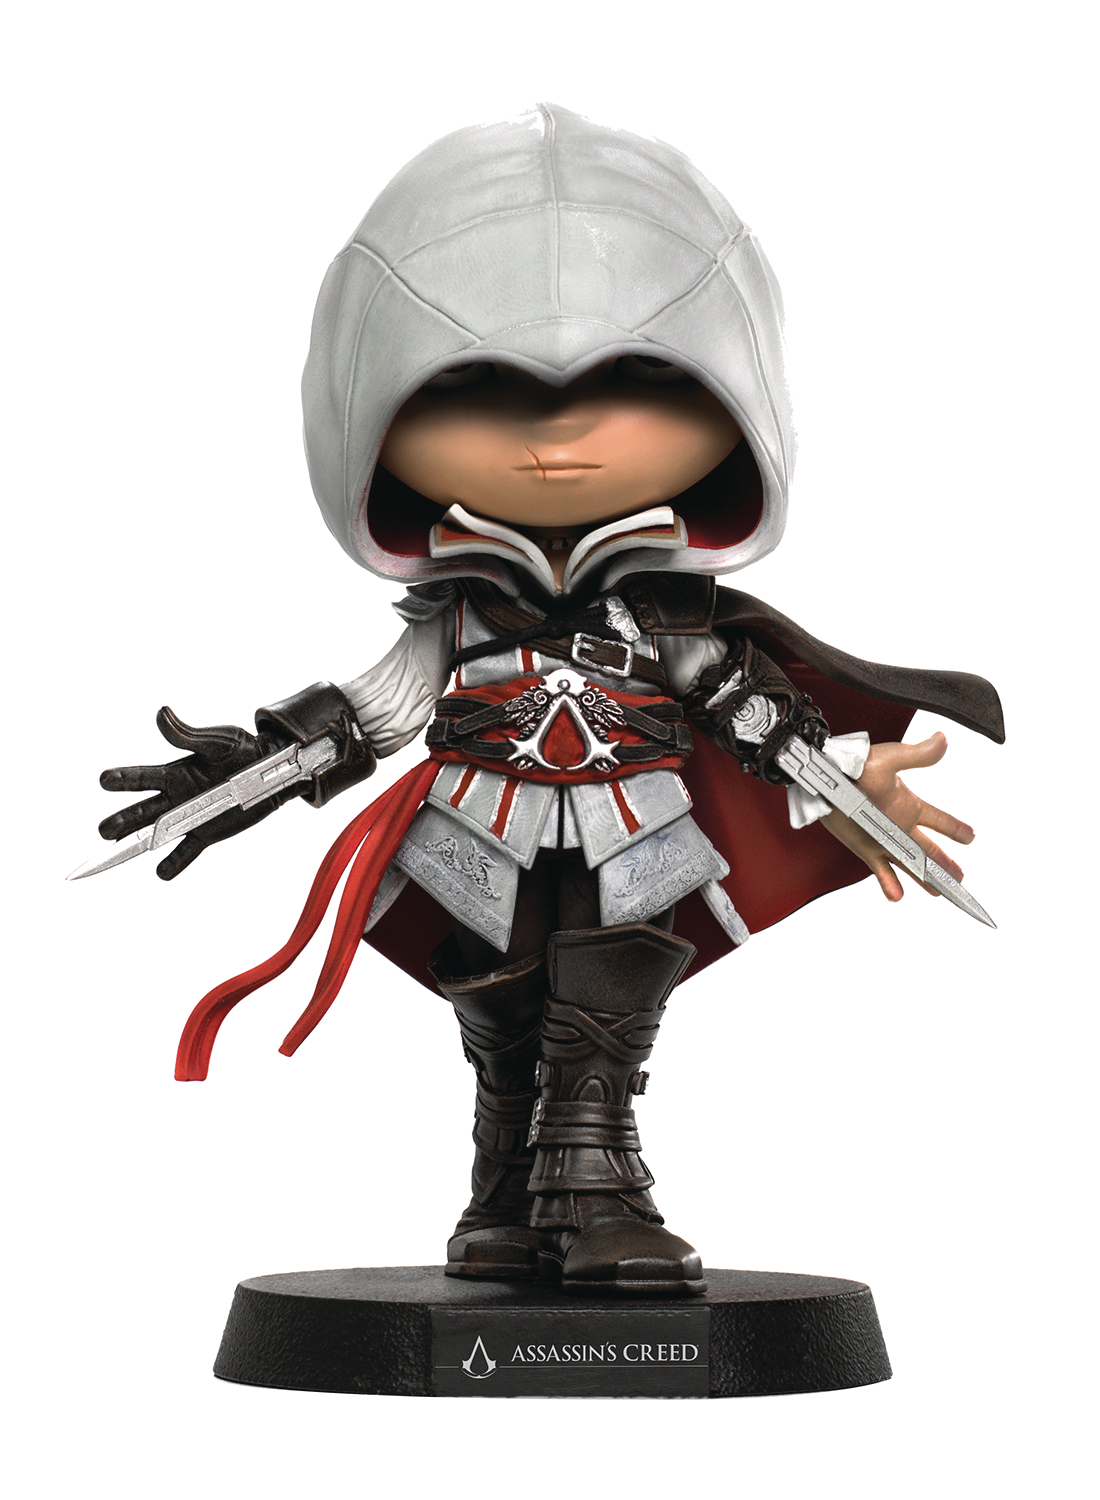 MINICO HEROES ASSASSINS CREED II EZIO AUDITORE VINYL STATUE